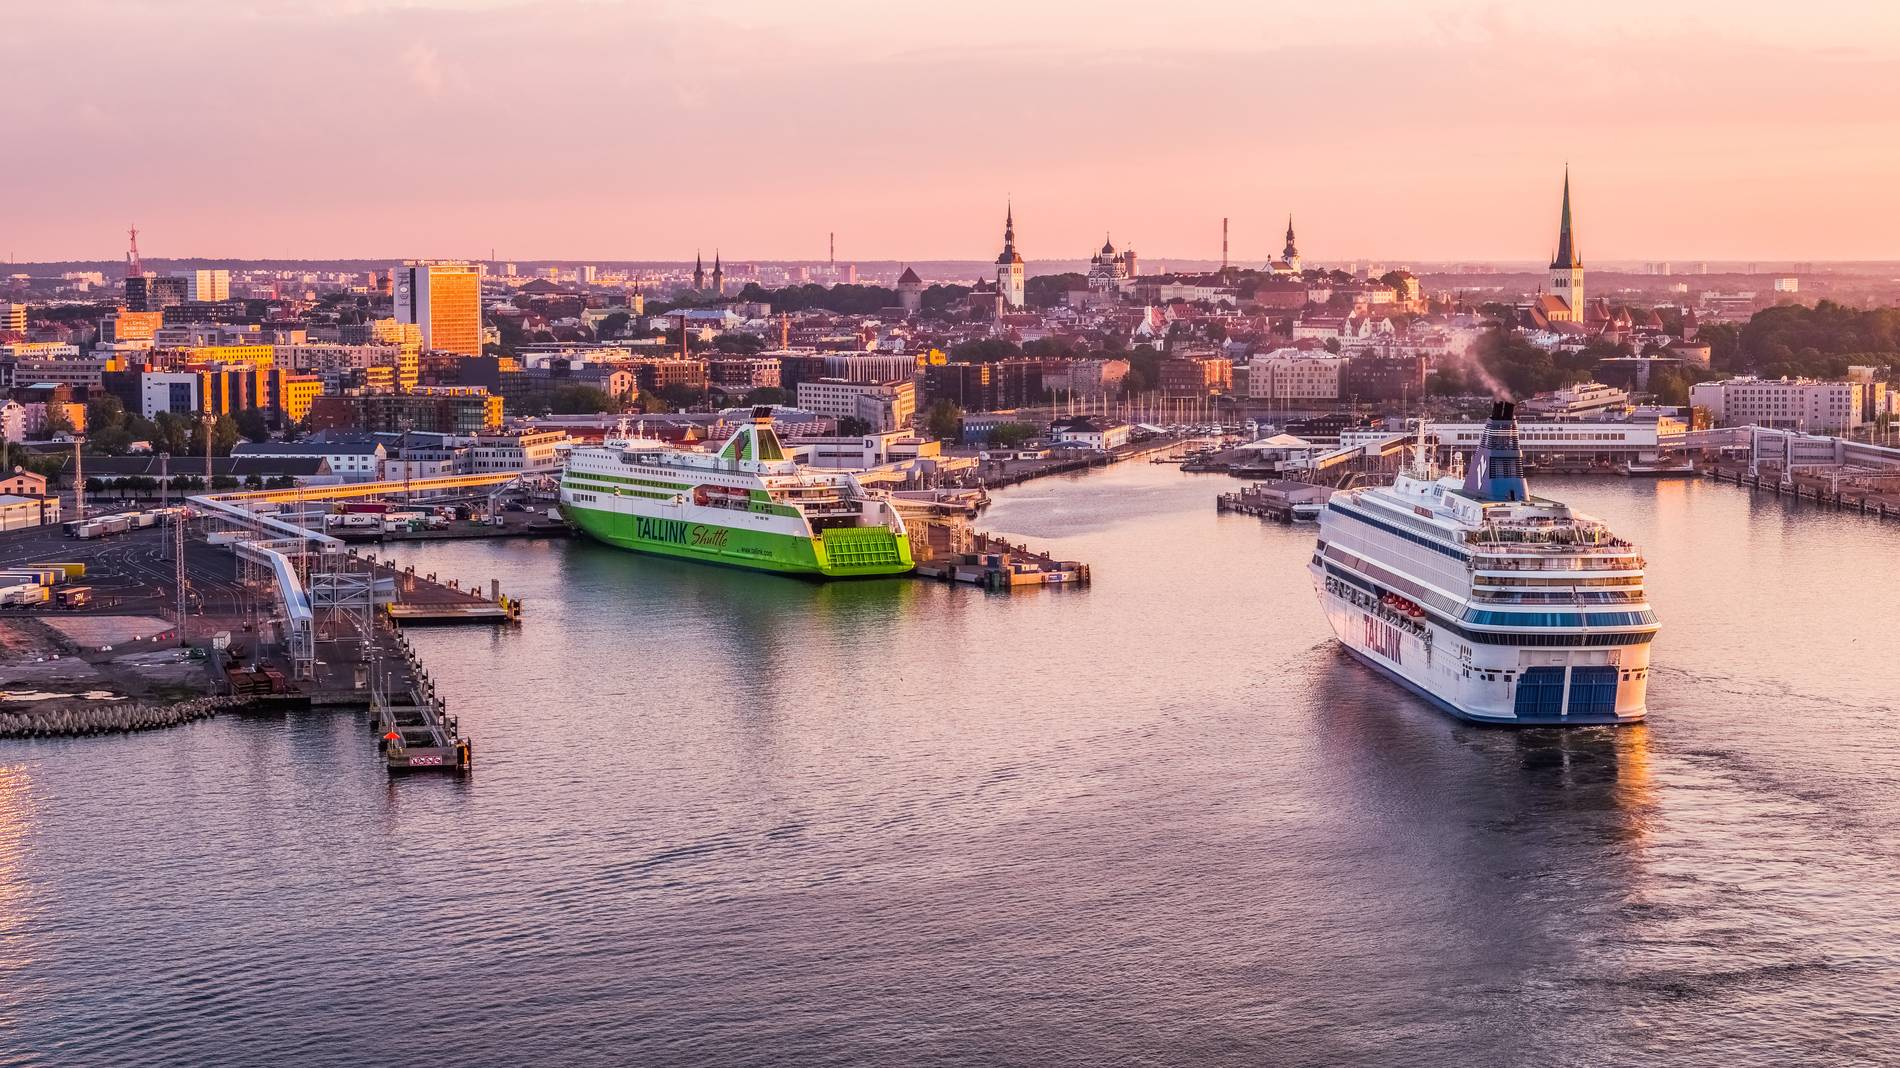 Ferry ships coming into the port of Tallinn Photo by: Kaupo Kalda